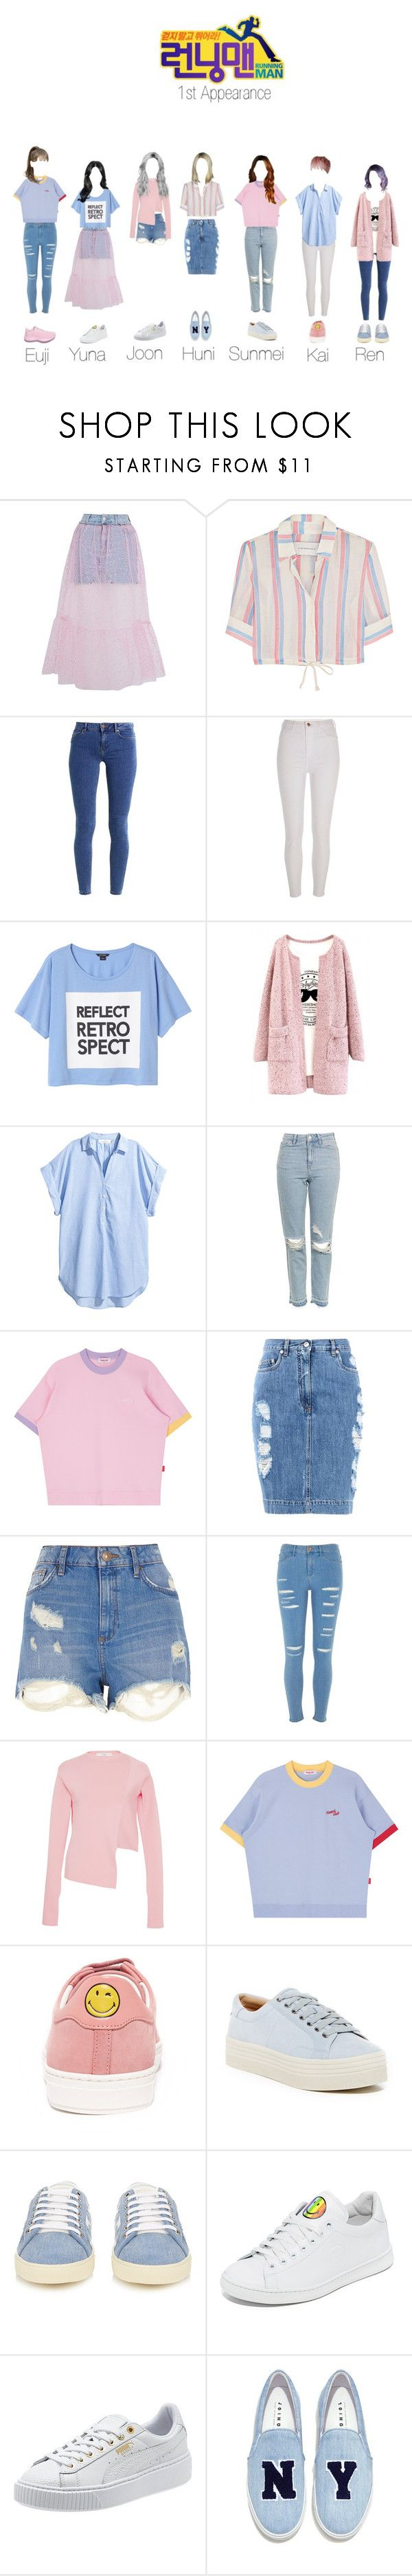 """""""Running man special quest"""" by official-angel ❤ liked on Polyvore featuring Topshop, Solid & Striped, even&odd, River Island, Monki, Moschino, TIBI, Anya Hindmarch, Marc Fisher LTD and Yves Saint Laurent"""